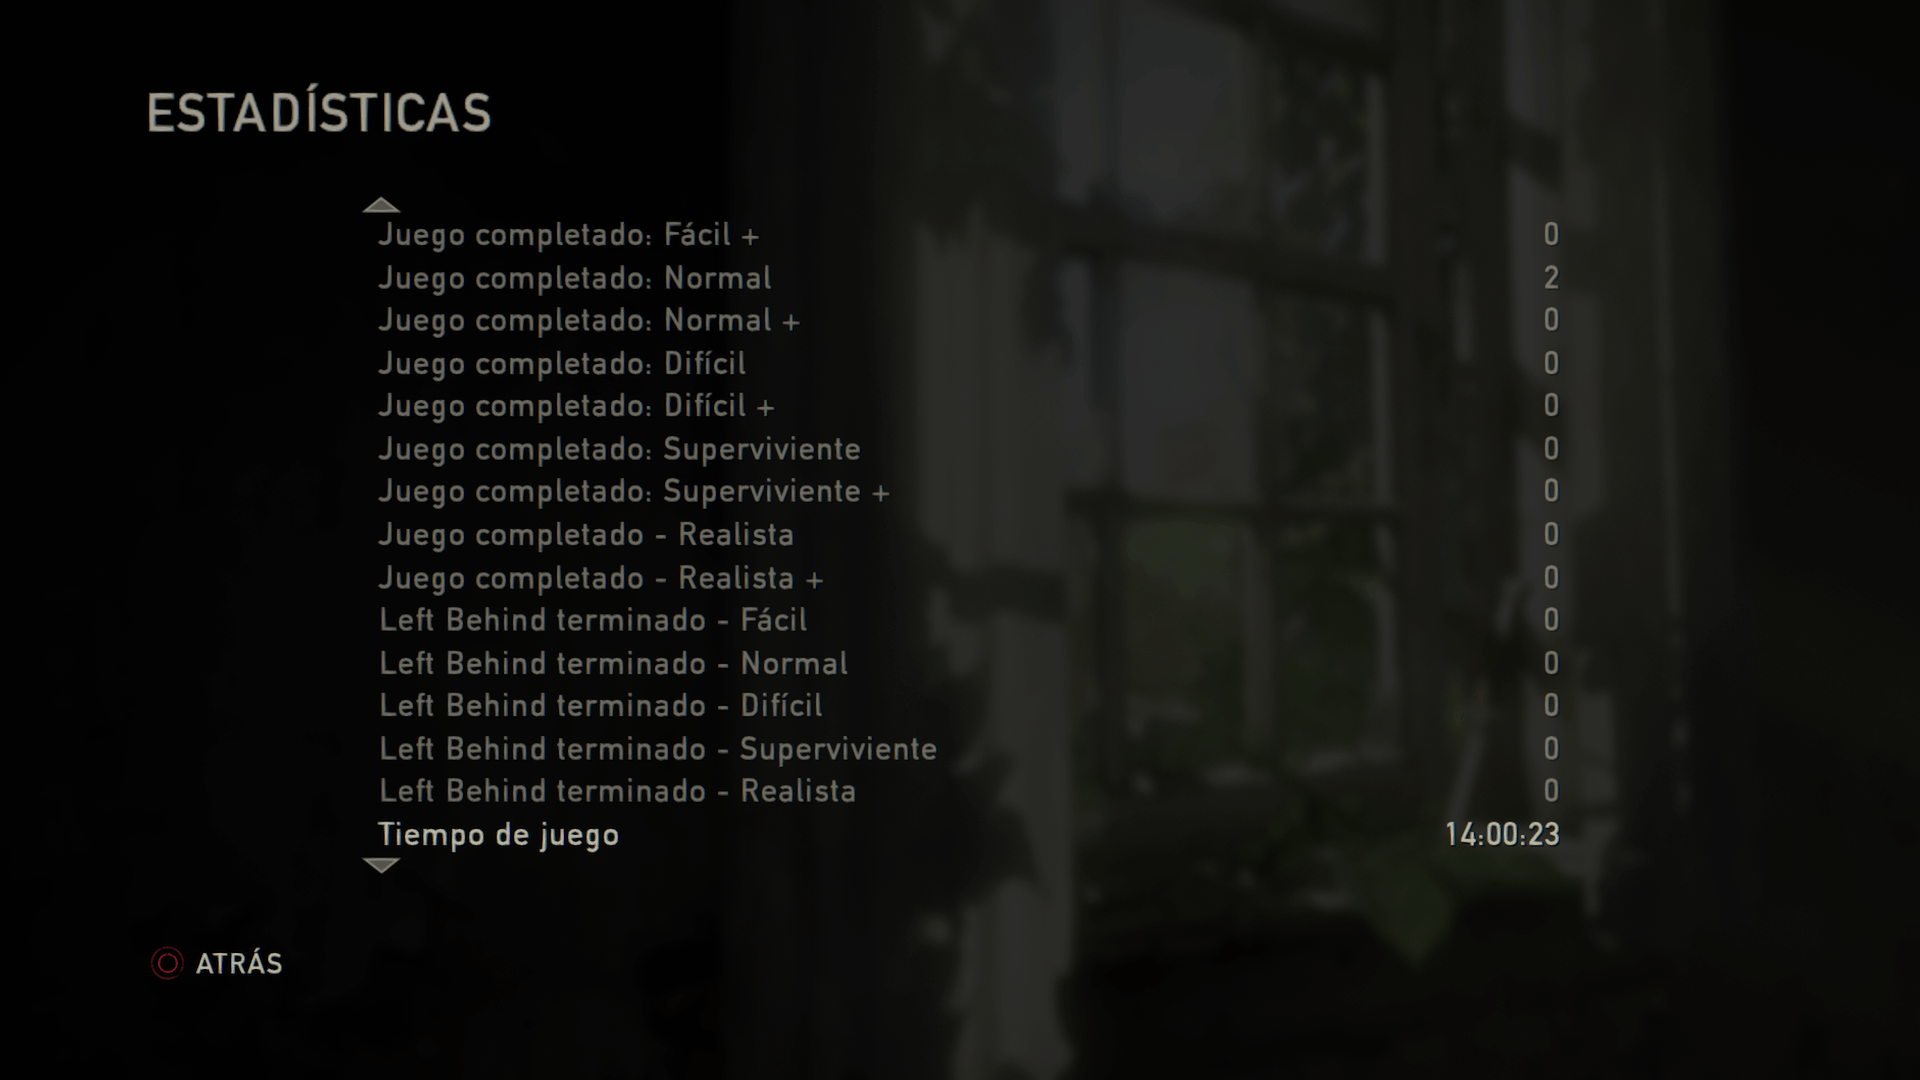 The Last of Us - Estadísticas de juego